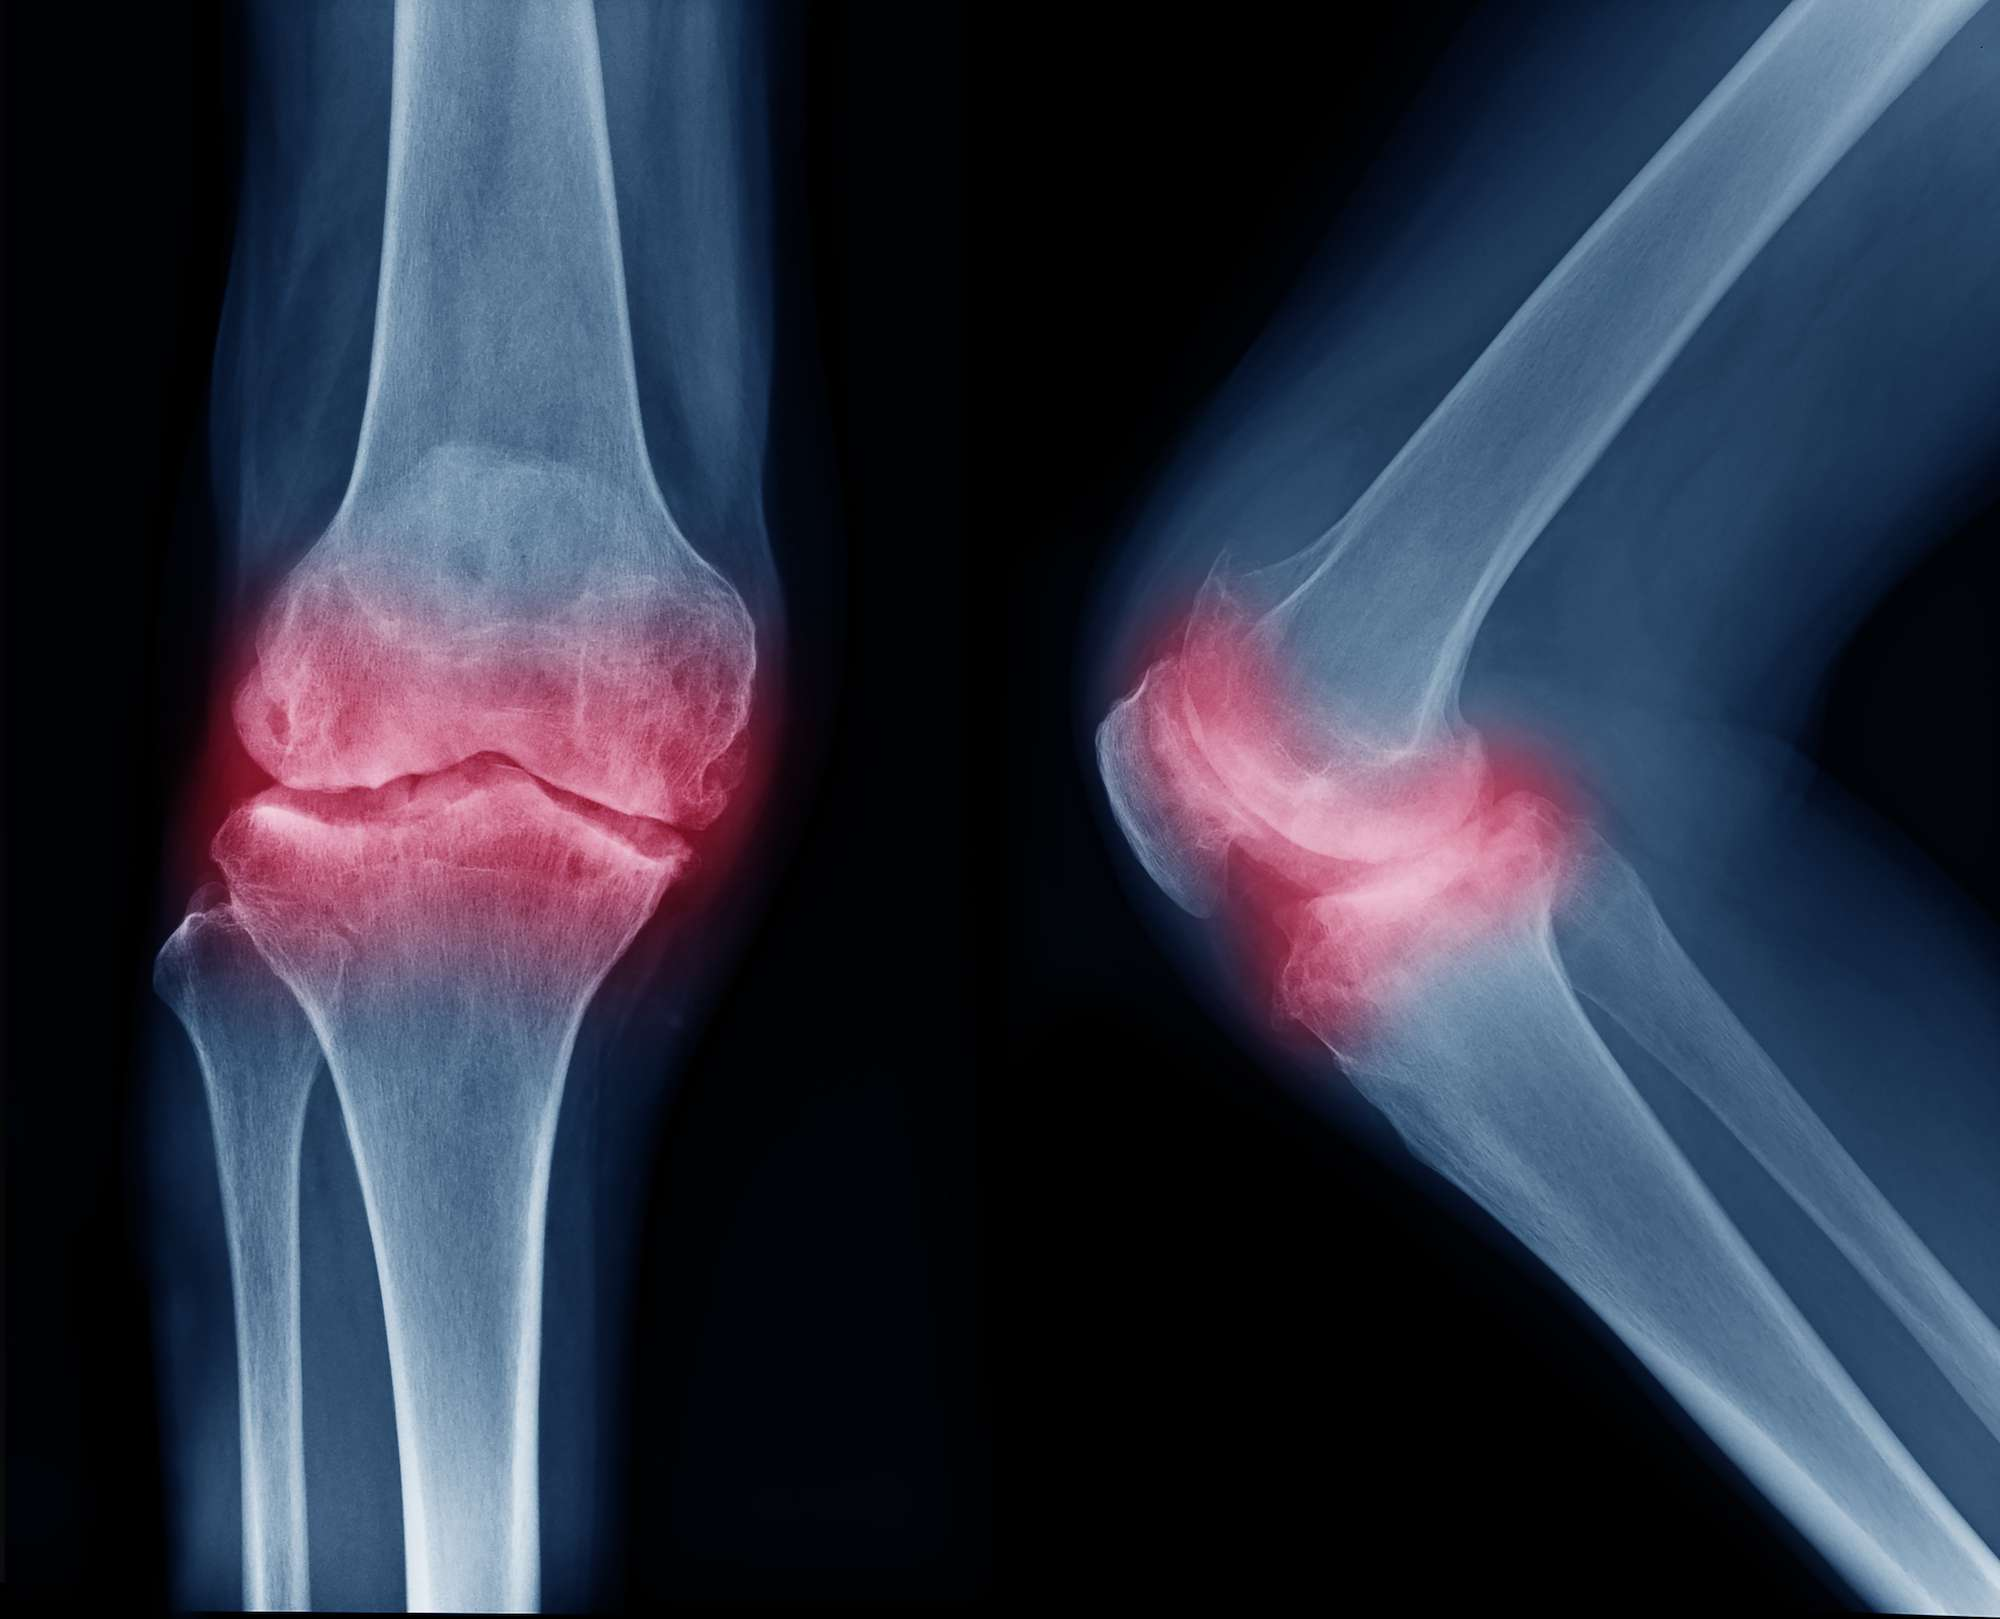 Film x-ray both knees show narrow joint space, osteophyte, subchondral sclerosis